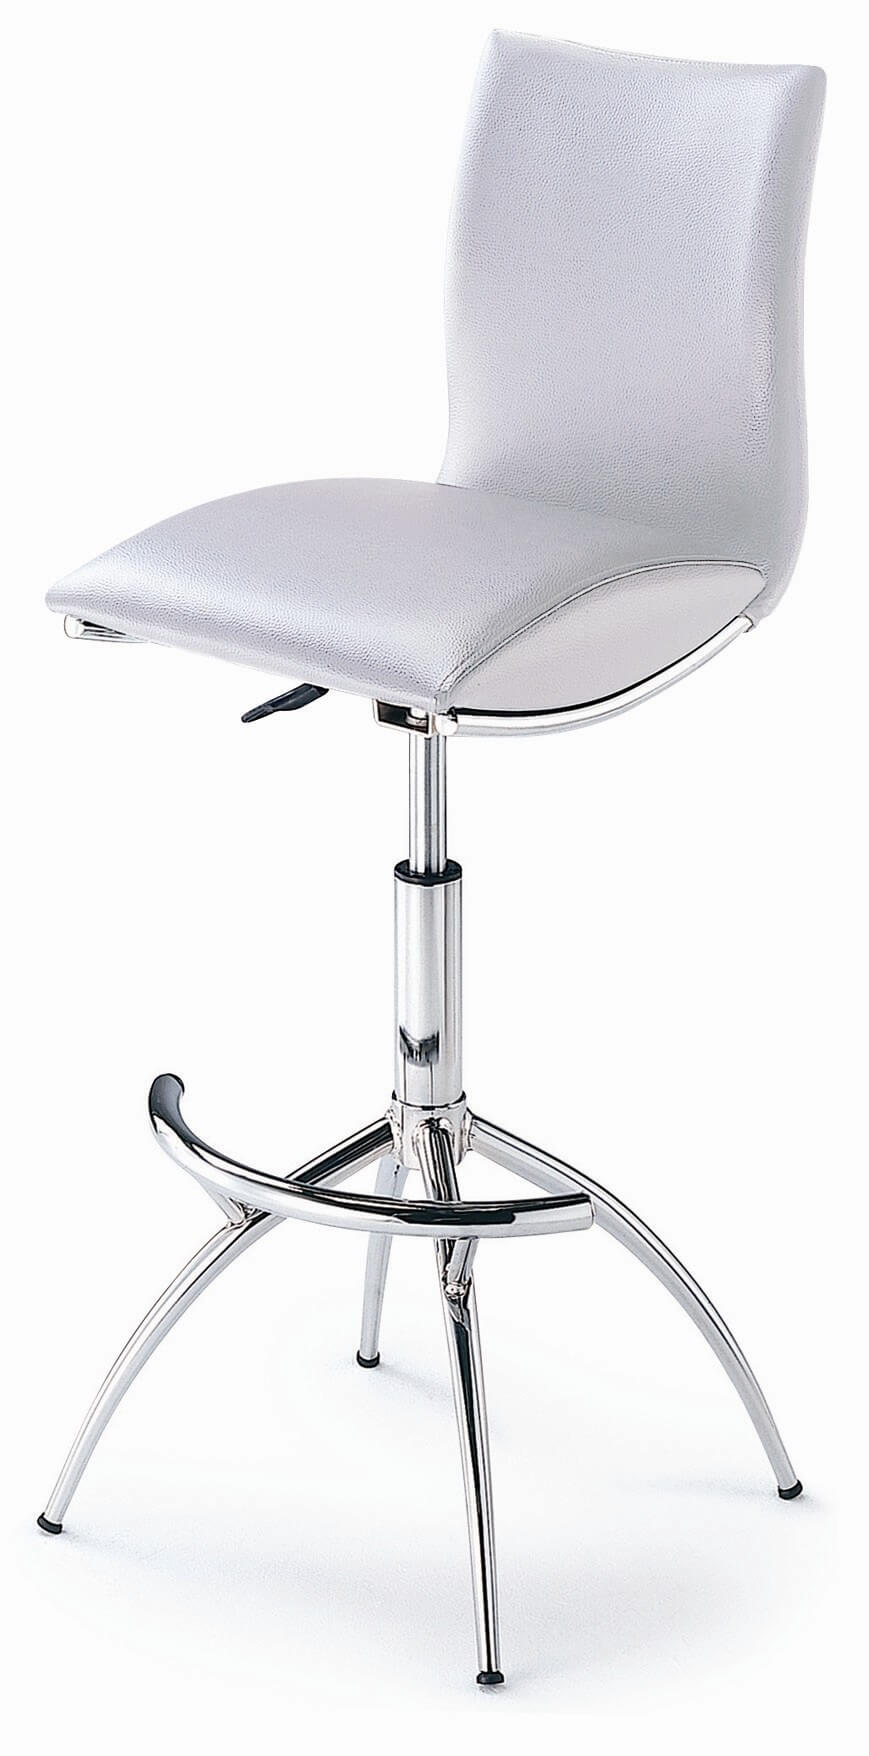 This modern stool is unique with its high back and pedestal/leg combo base design.  The 4 legs extending from the main support bar give it an elegance you don't see with the flat pedestal base style.  This stool both swivels and adjusts up and down.